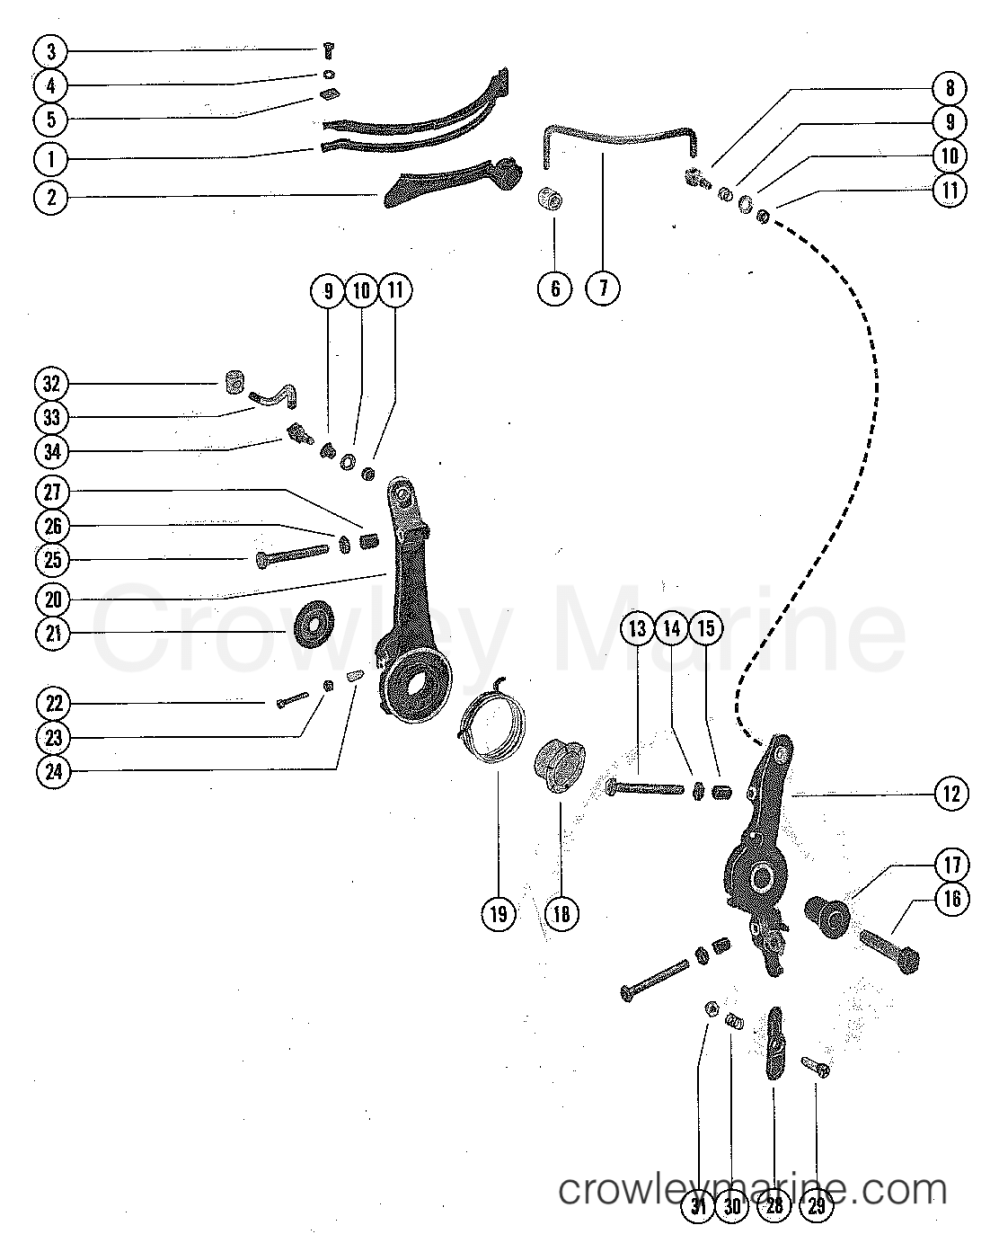 medium resolution of 1976 mercury outboard 65 1650506 throttle control linkage and spark advance section